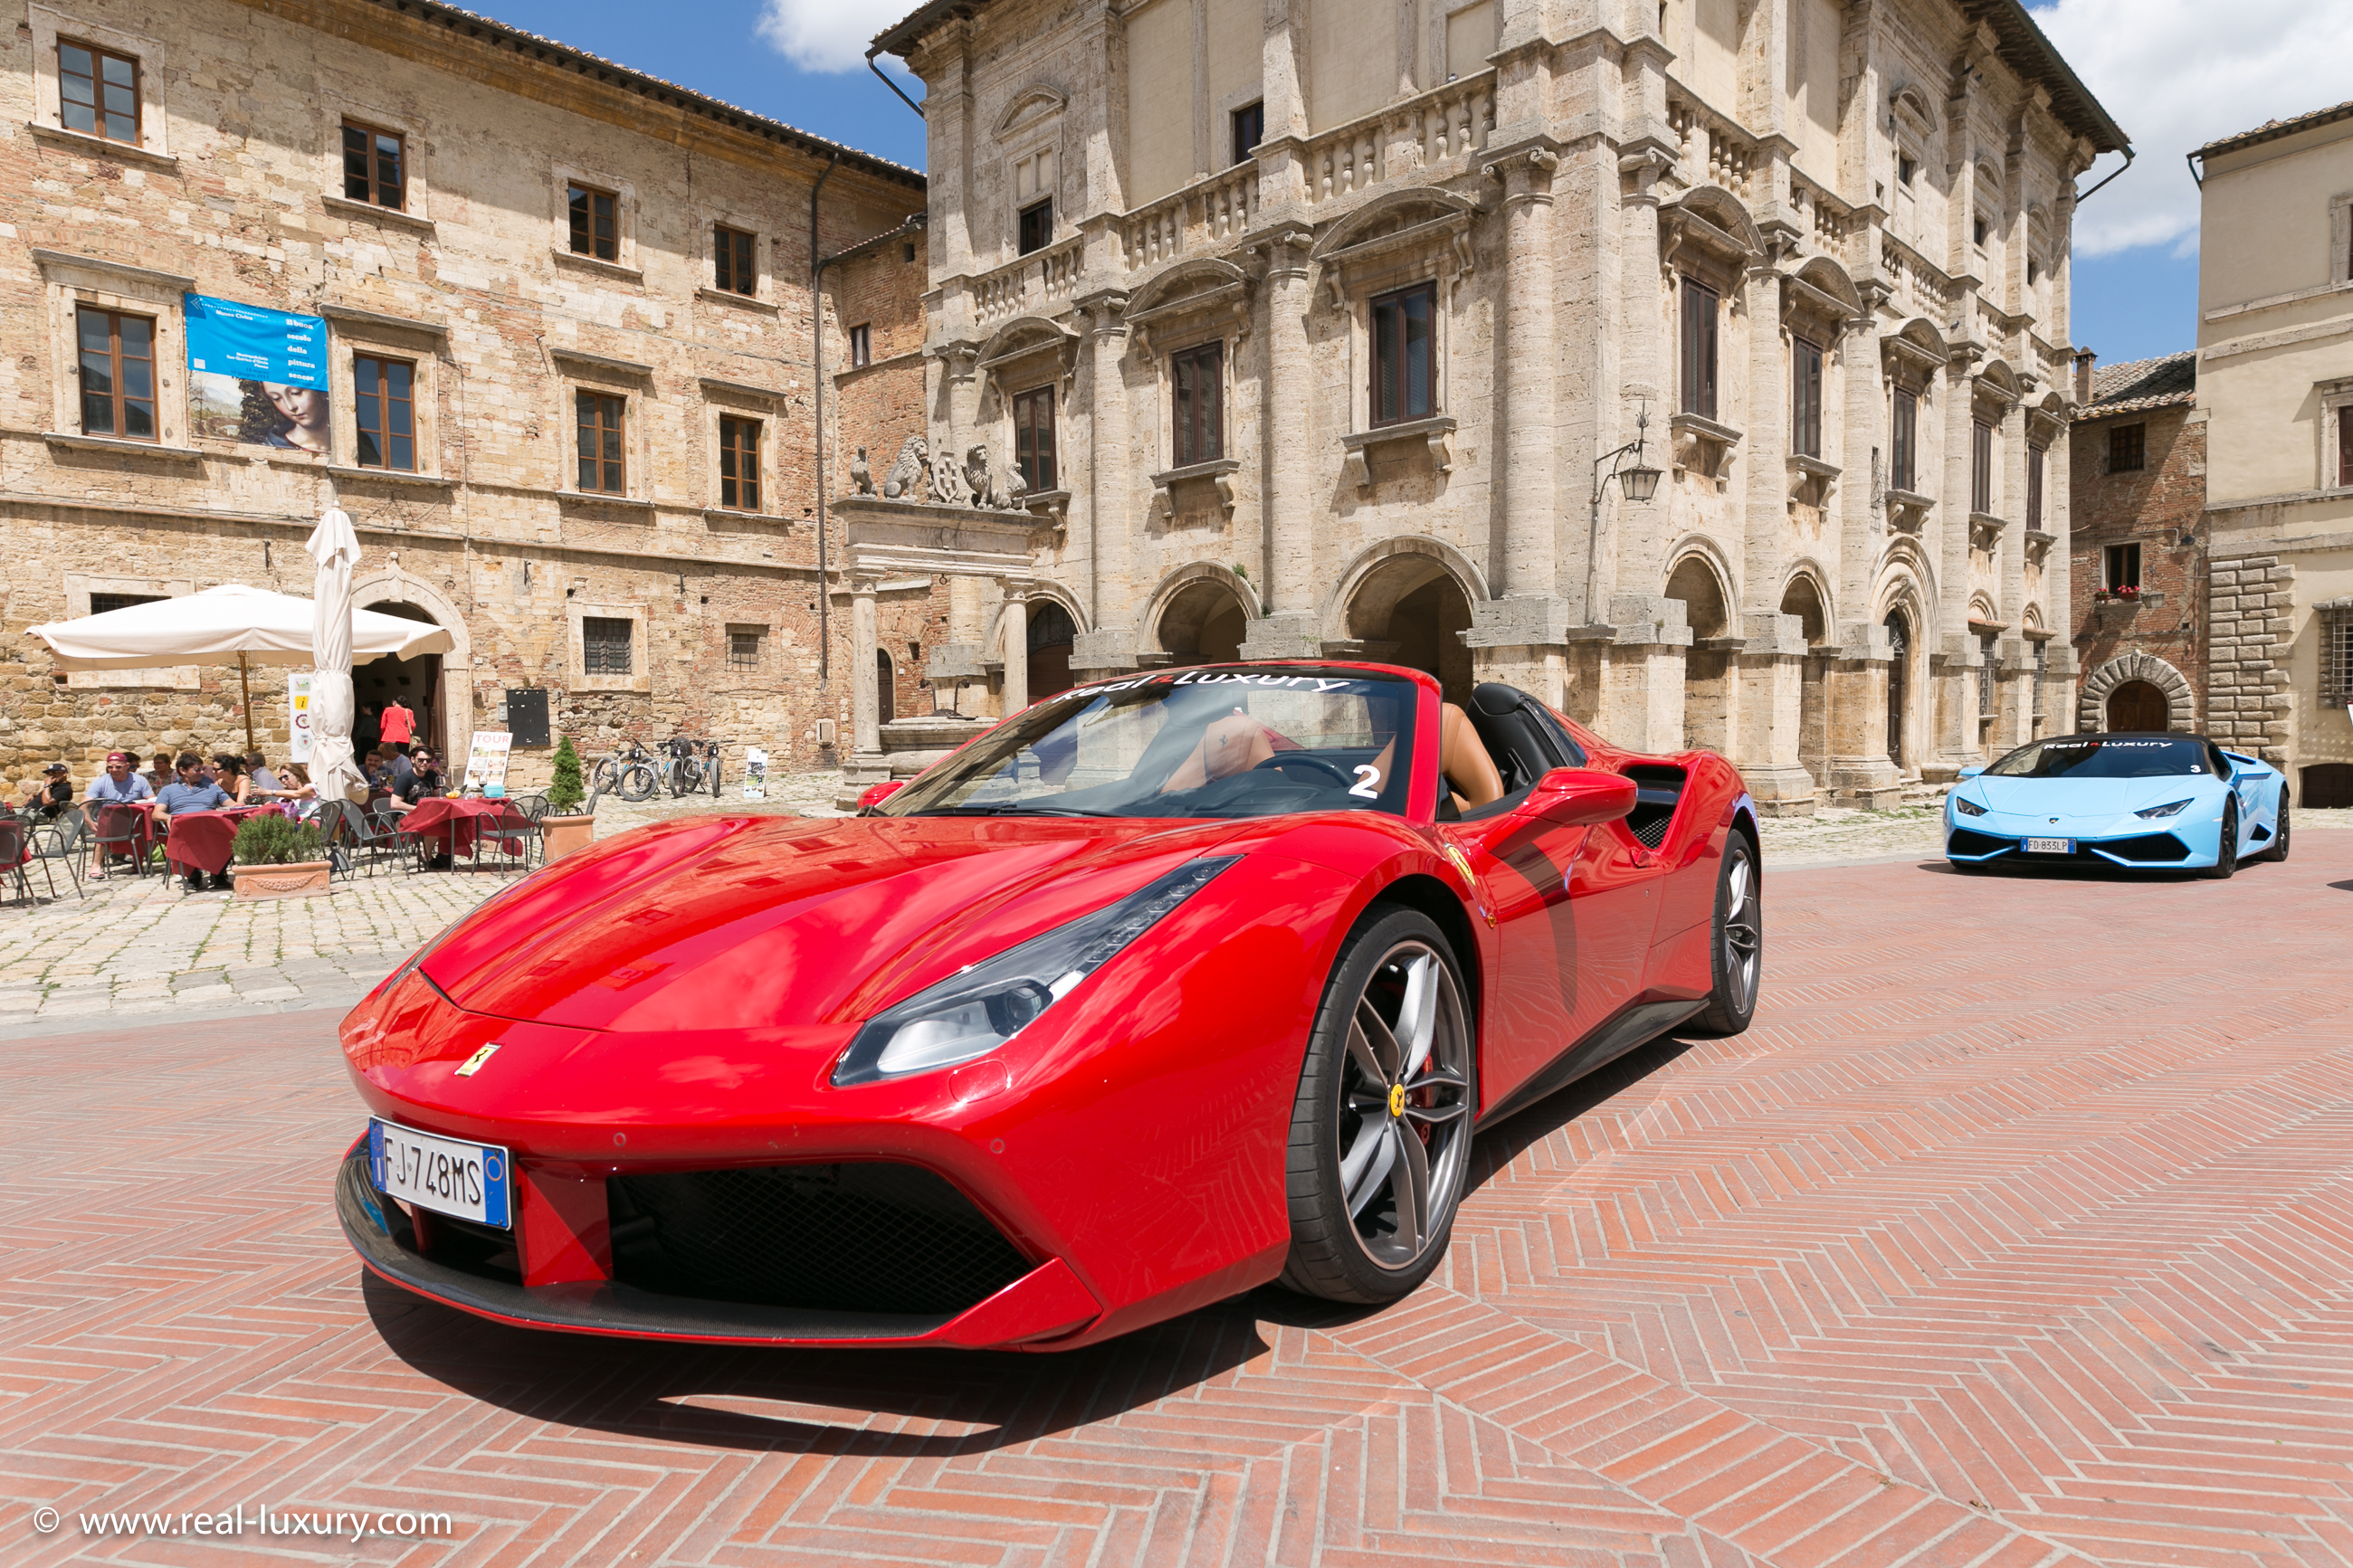 Ferrari and or Lamborghini tours in Italy, Switzerland, France